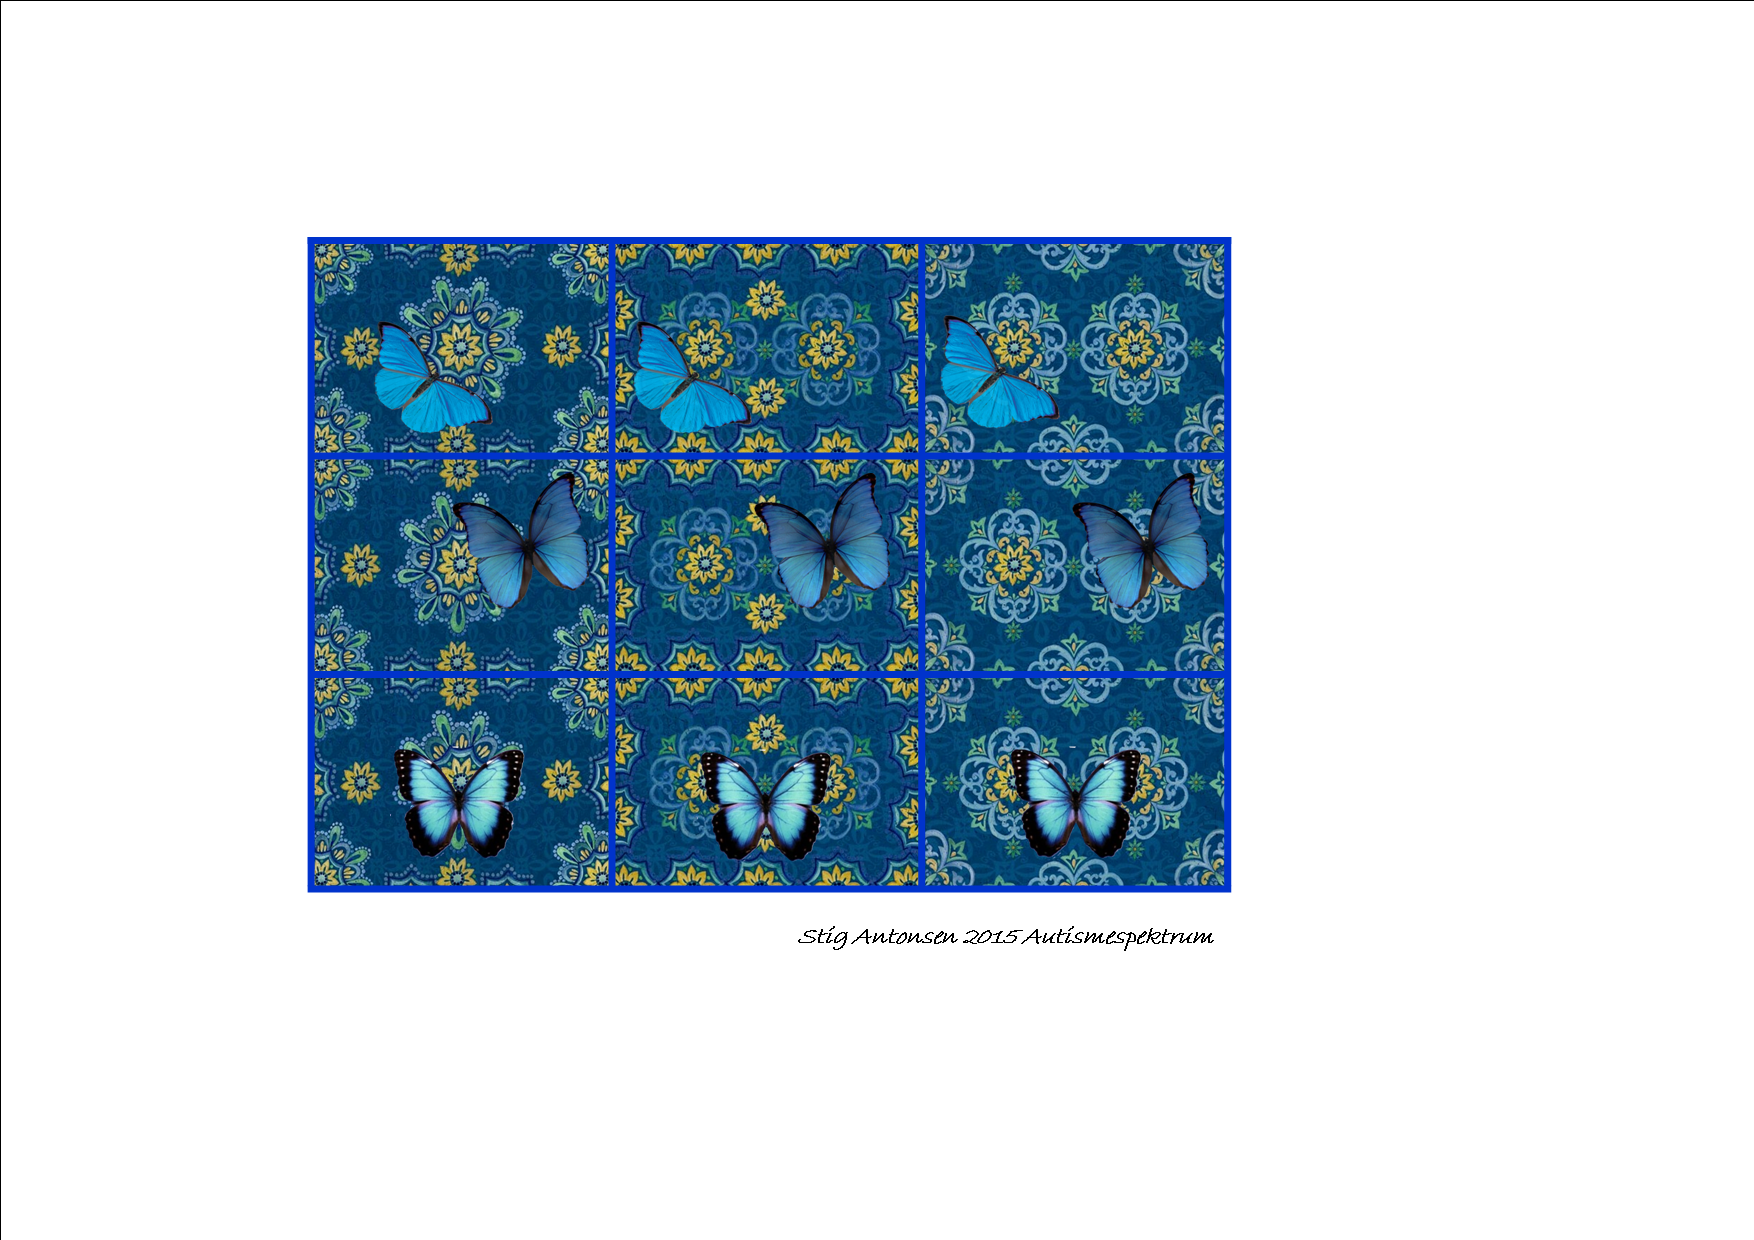 Tiles For The Butterfly And Blue Pattern Matrix By Autismespektrum